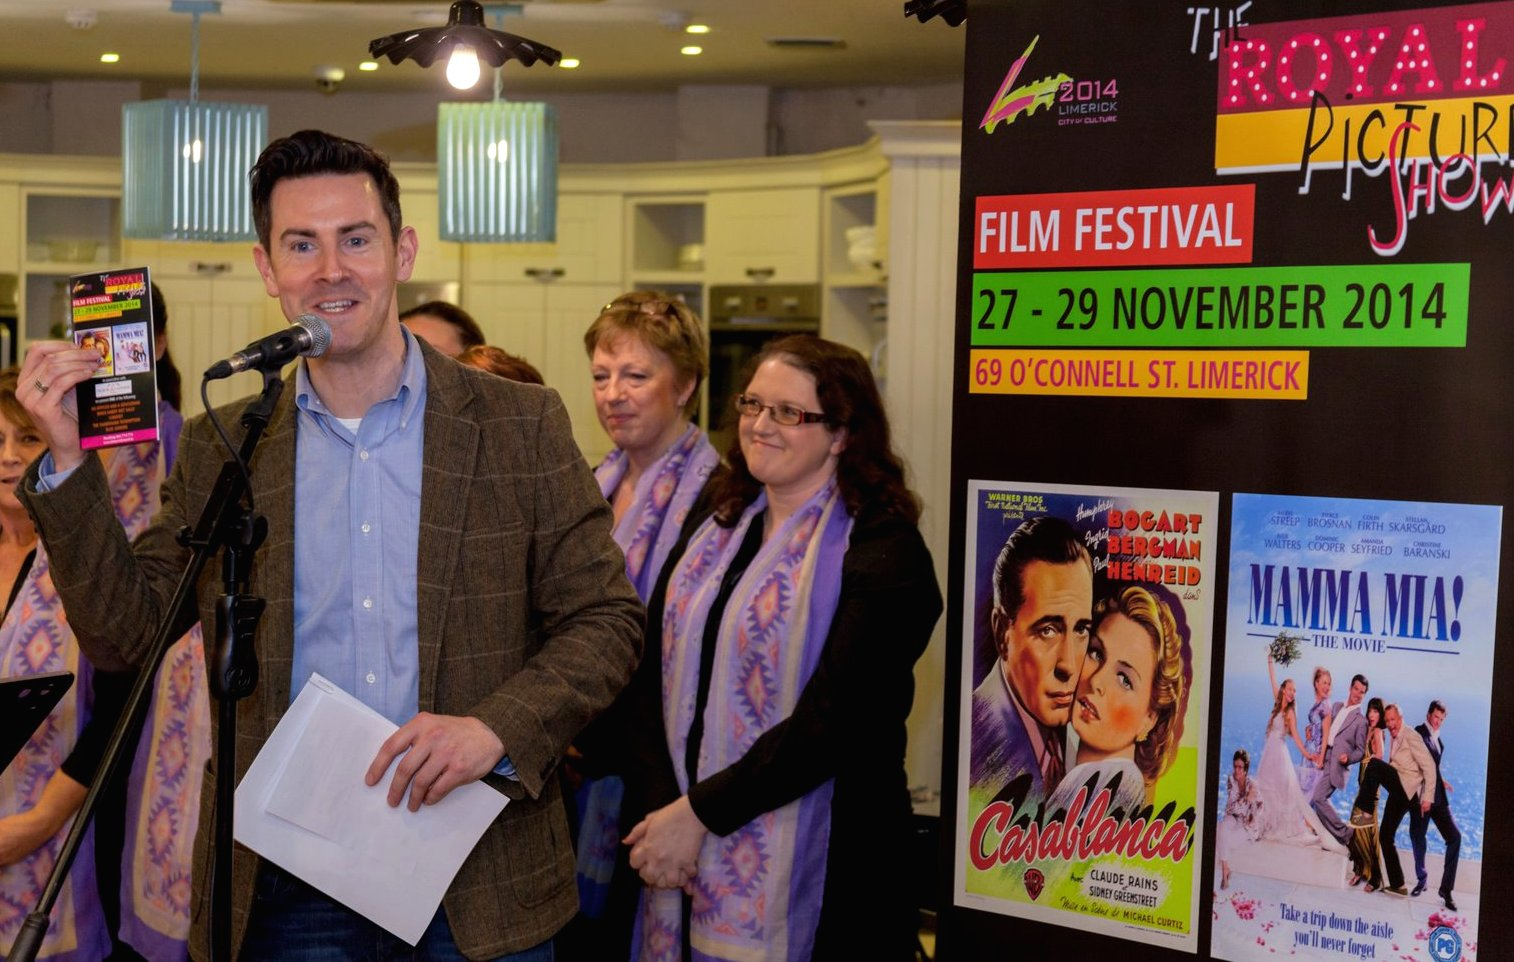 Fourth Royal Picture Show Film Festival